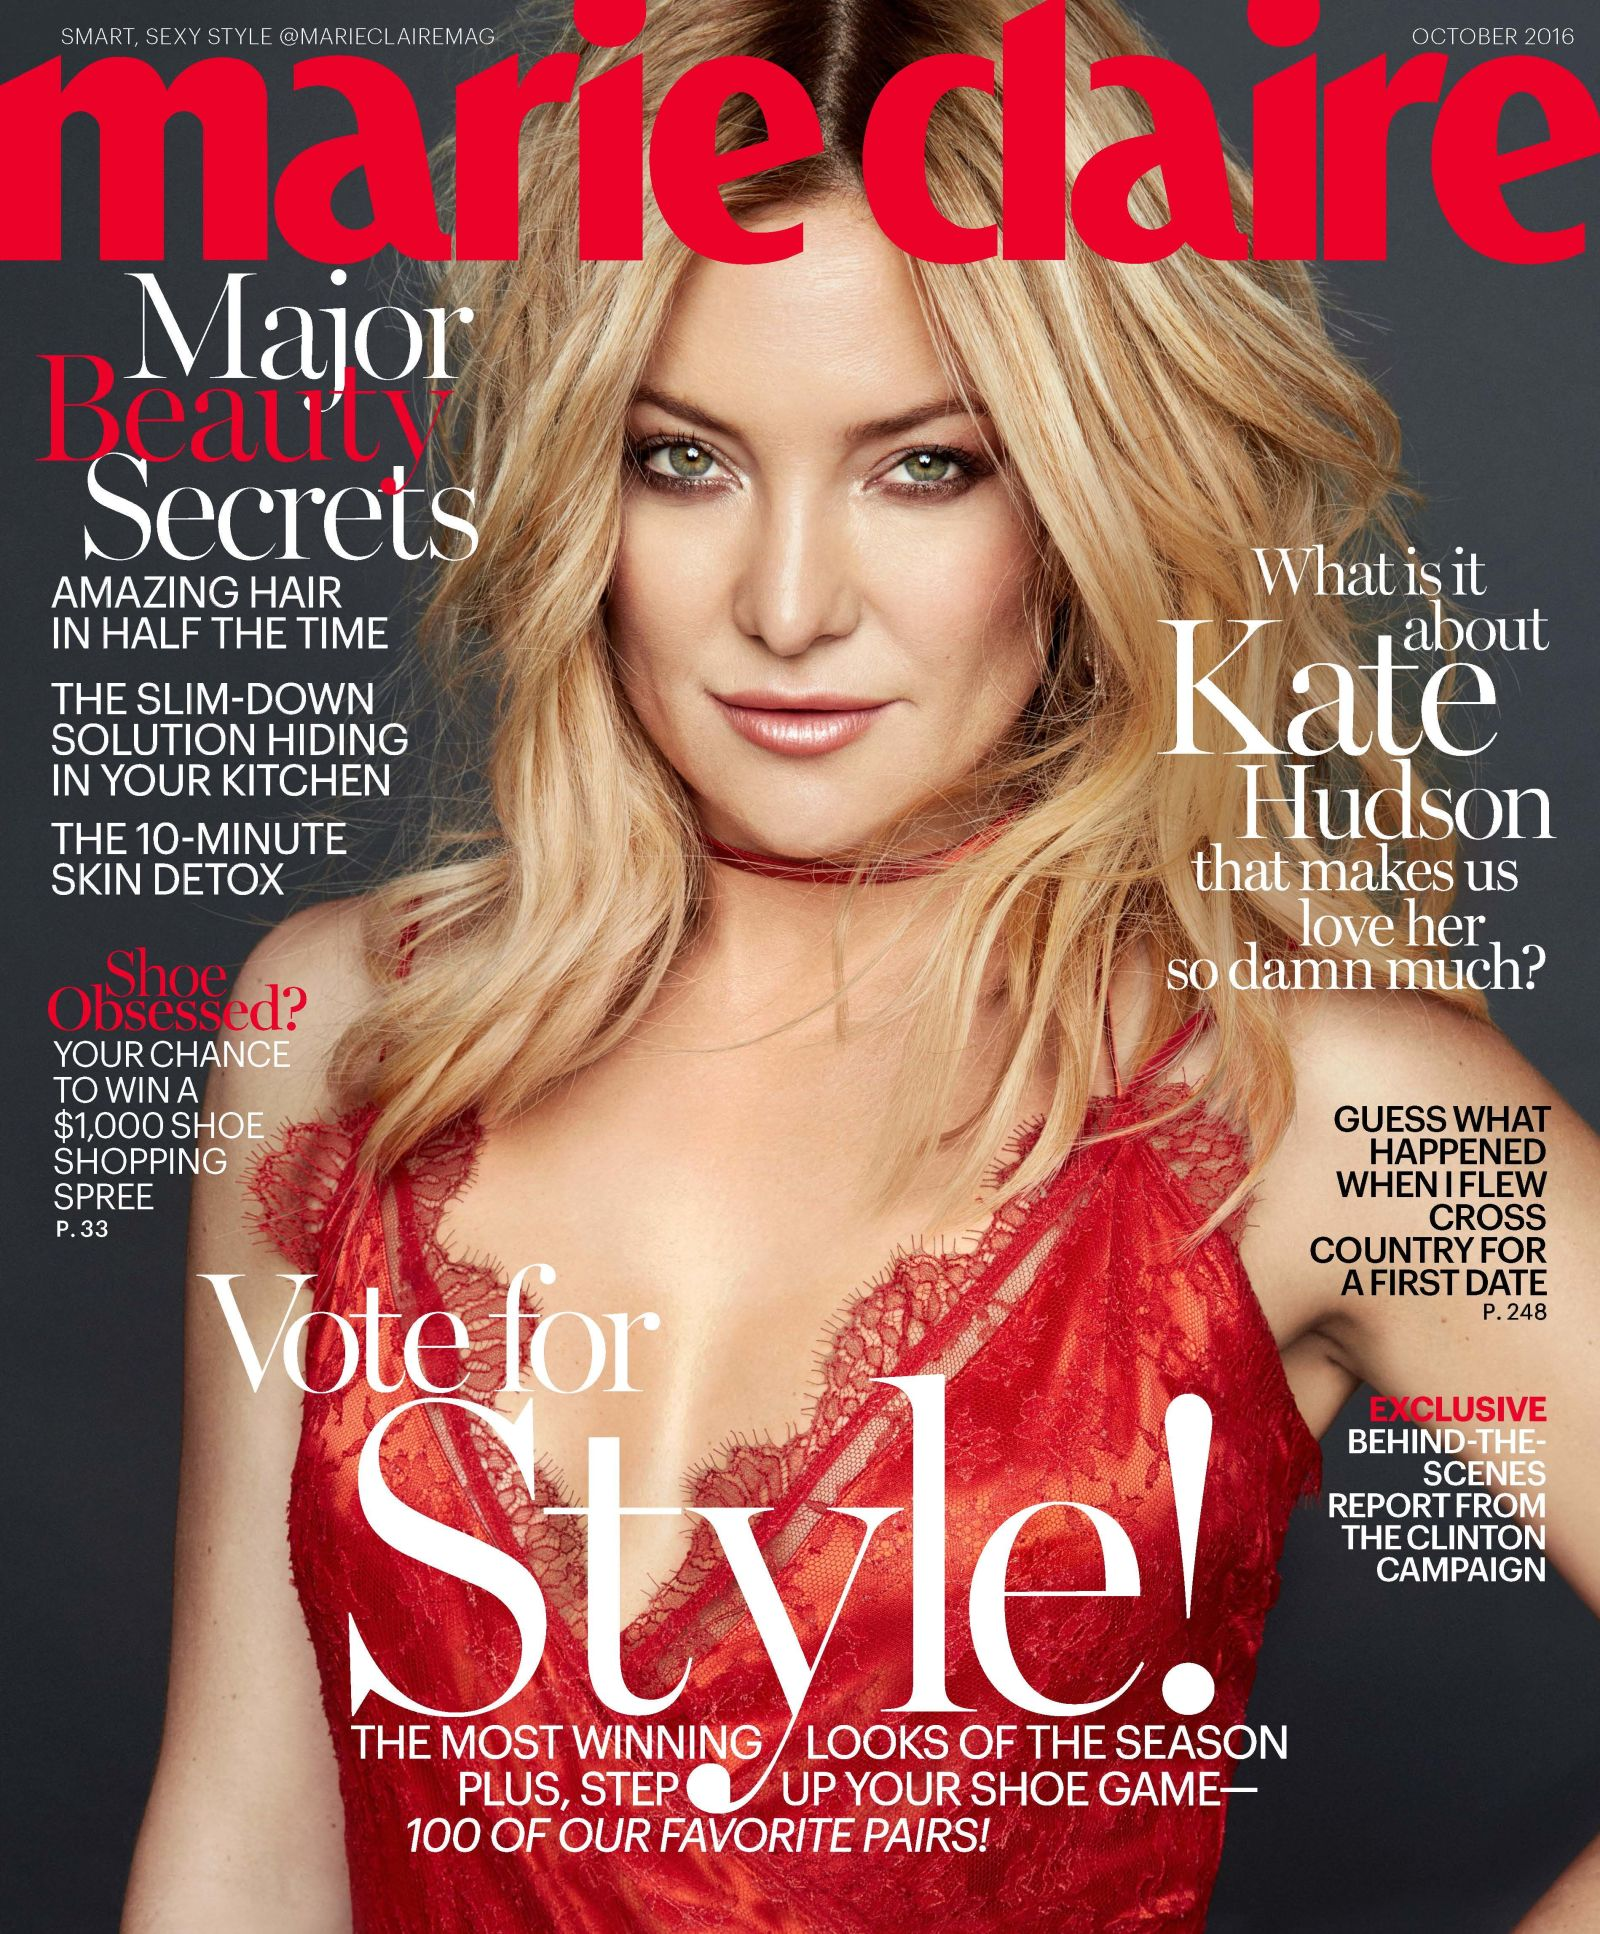 Marie Claire - Kate Hudson